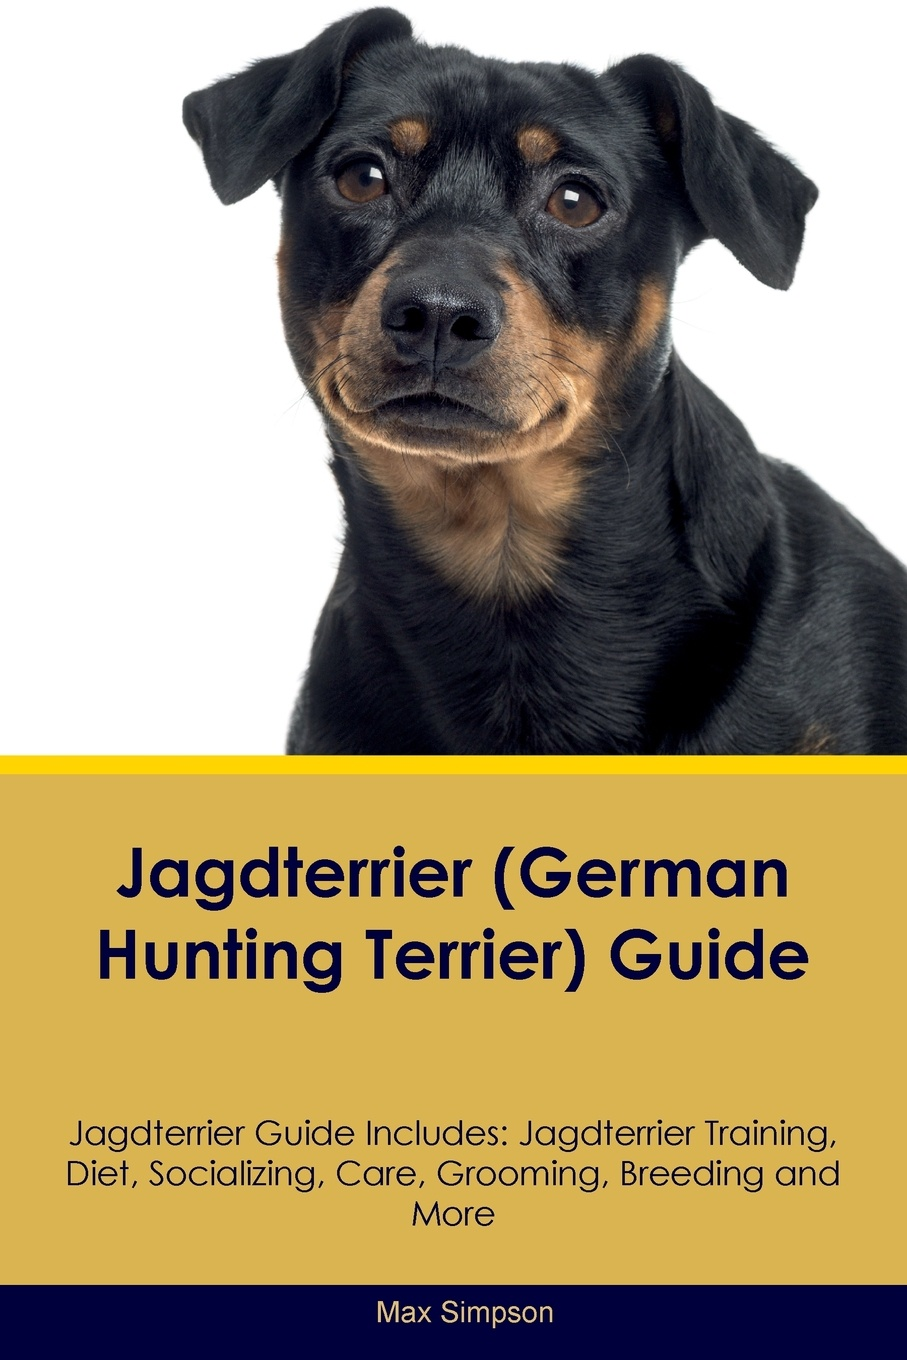 Max Simpson Jagdterrier (German Hunting Terrier) Guide Includes. Training, Diet, Socializing, Care, Grooming, Breeding and More